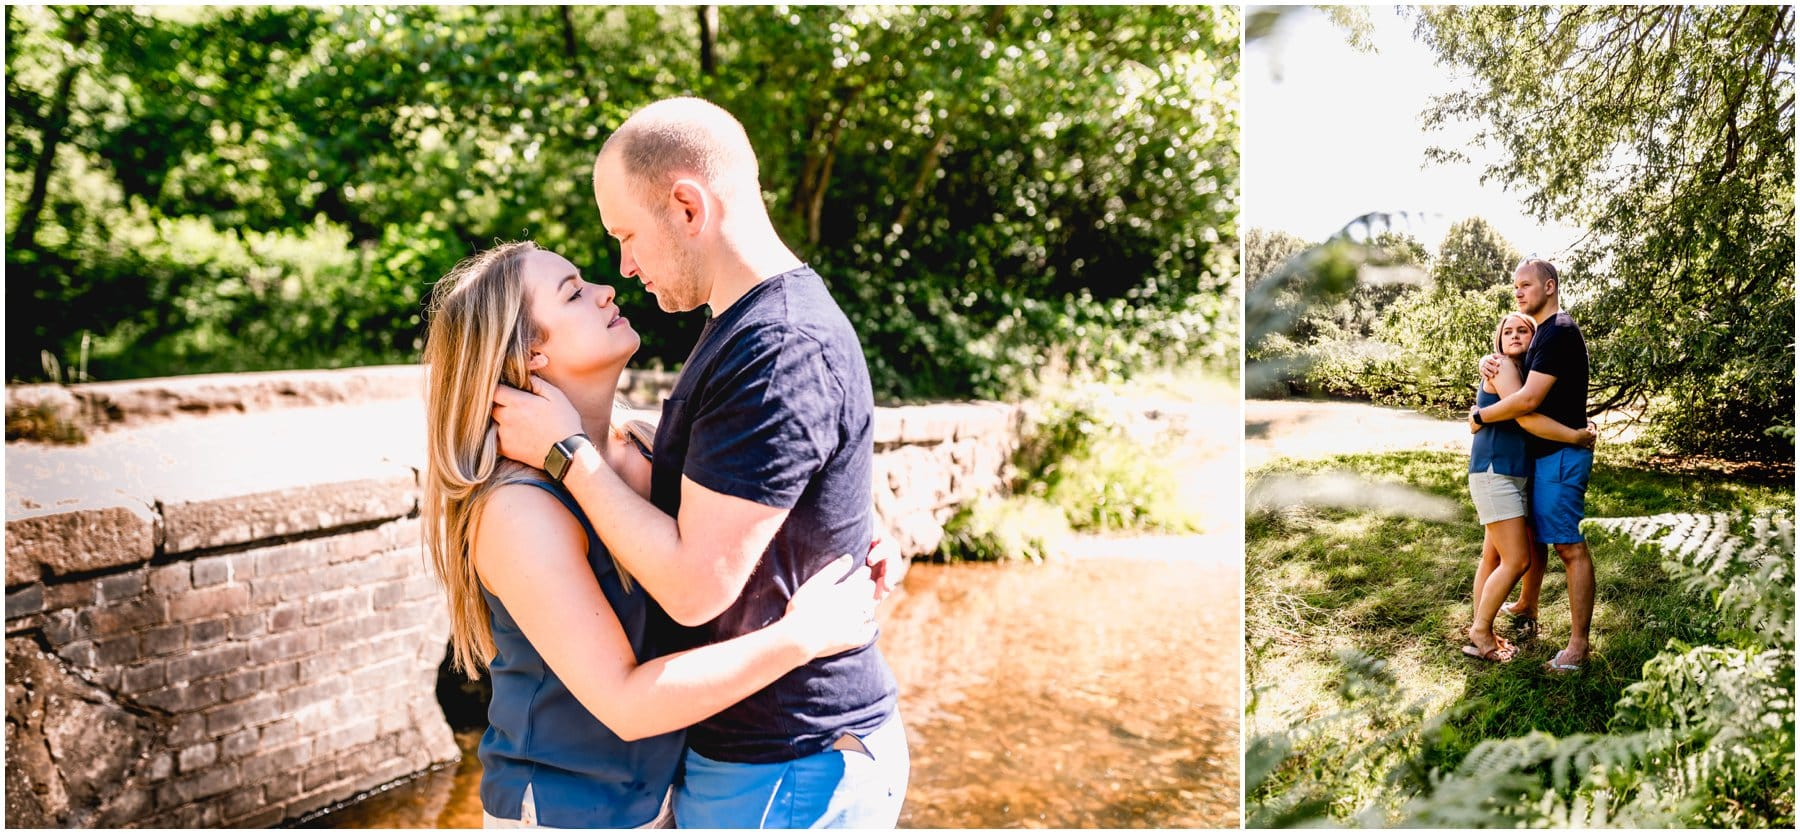 engagement shoot in Sutton Park in Sutton Coldfield with Sadie and James paddling in a stream